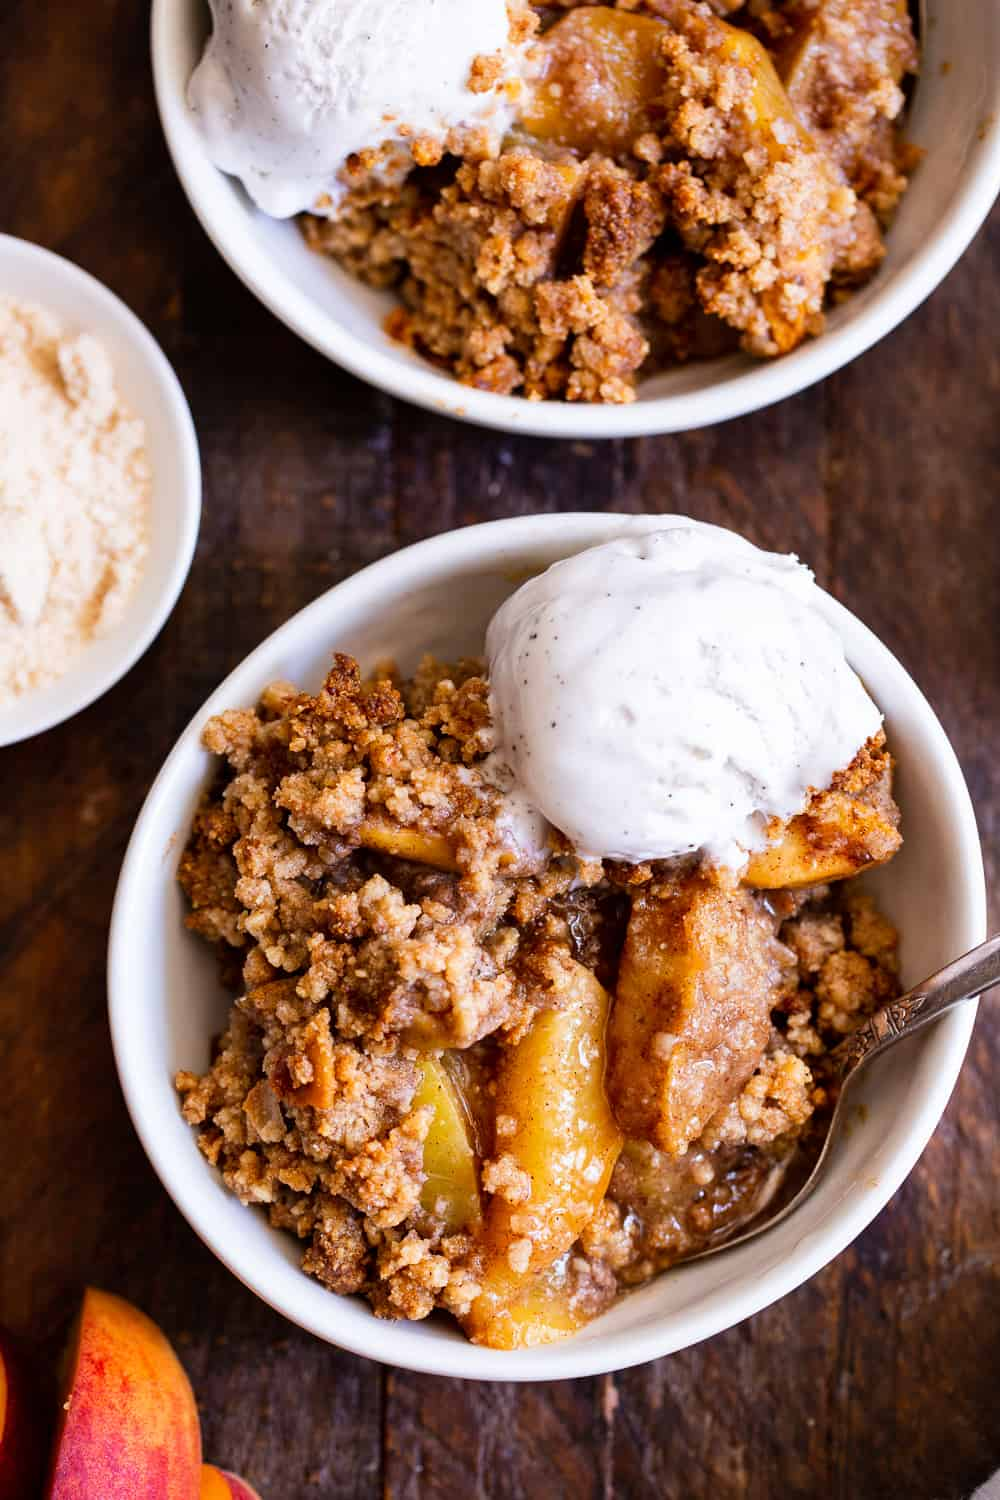 This paleo peach crisp has a juicy sweet peach filling with a toasty crisp topping that's out of this world delicious! It's truly the best peach crisp you'll ever make. A fast family favorite for peach season, this crisp is paleo, vegan and gluten free. #paleo #dessert #peaches #vegan #cleaneating #glutenfreebaking